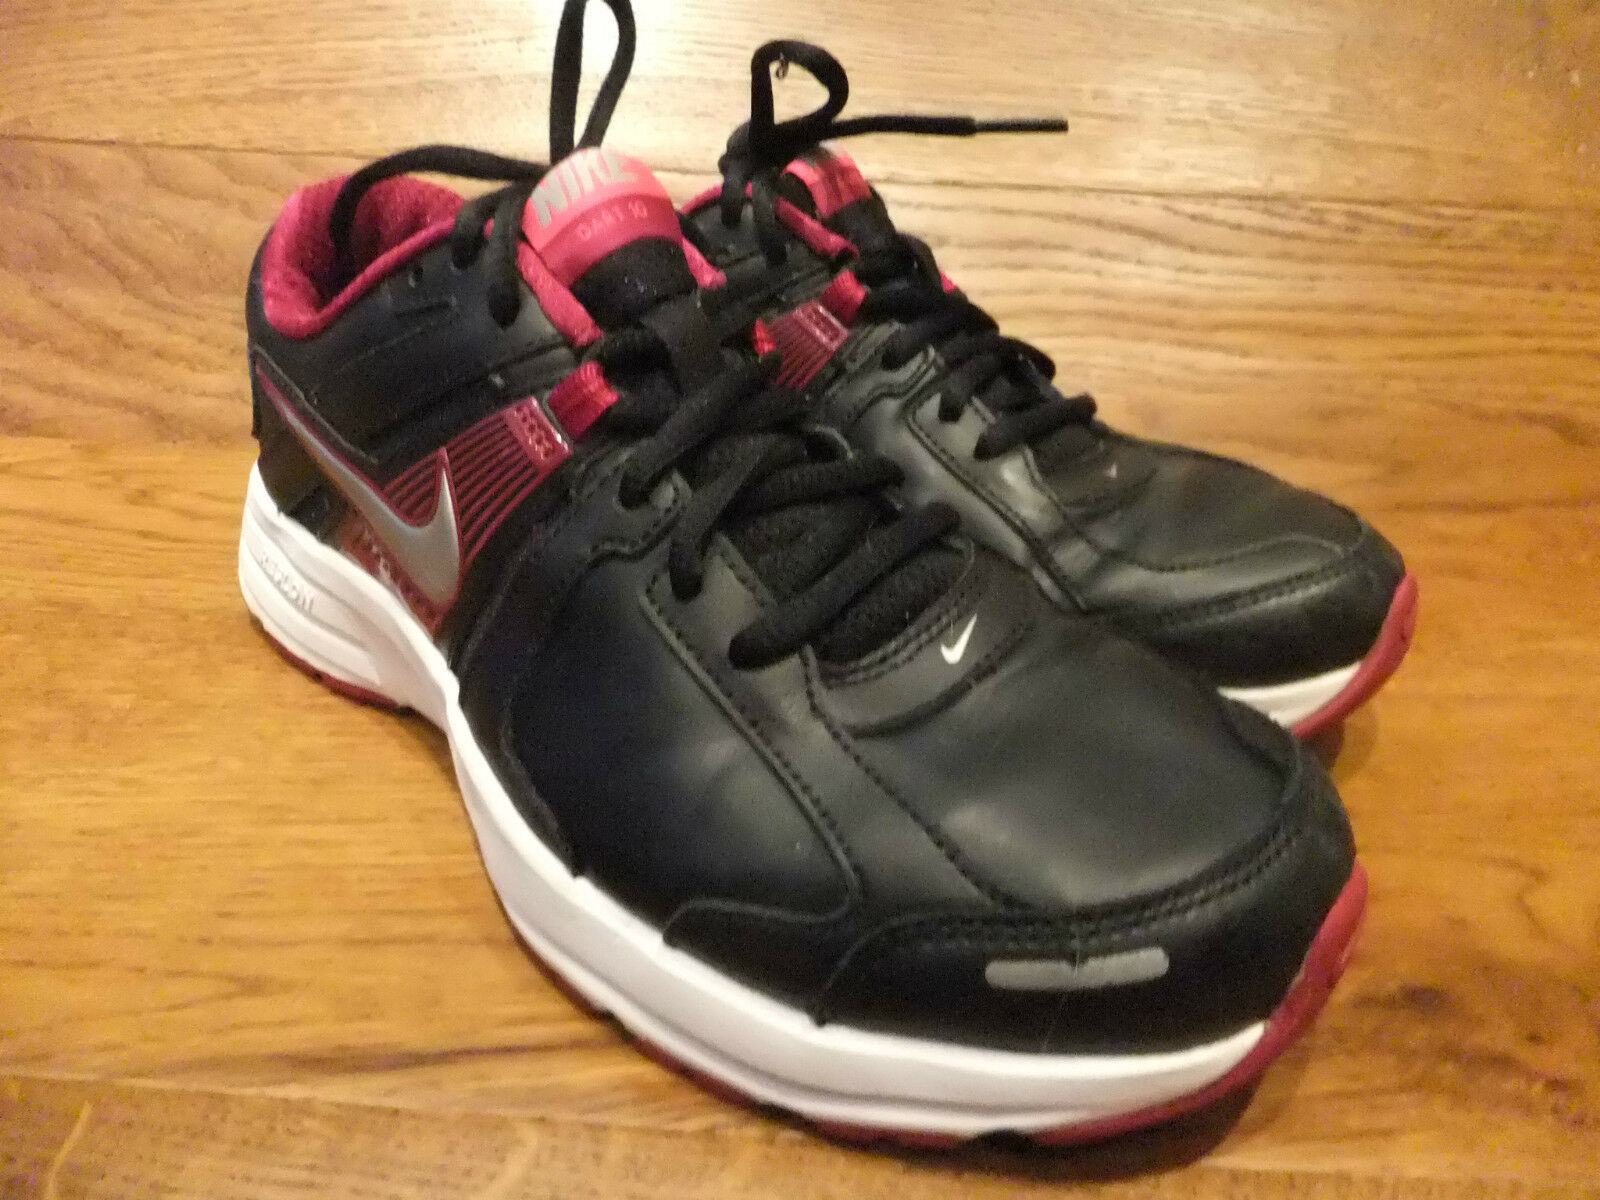 Nike Dart 10 Black Running Shoes Trainers Comfortable The most popular shoes for men and women